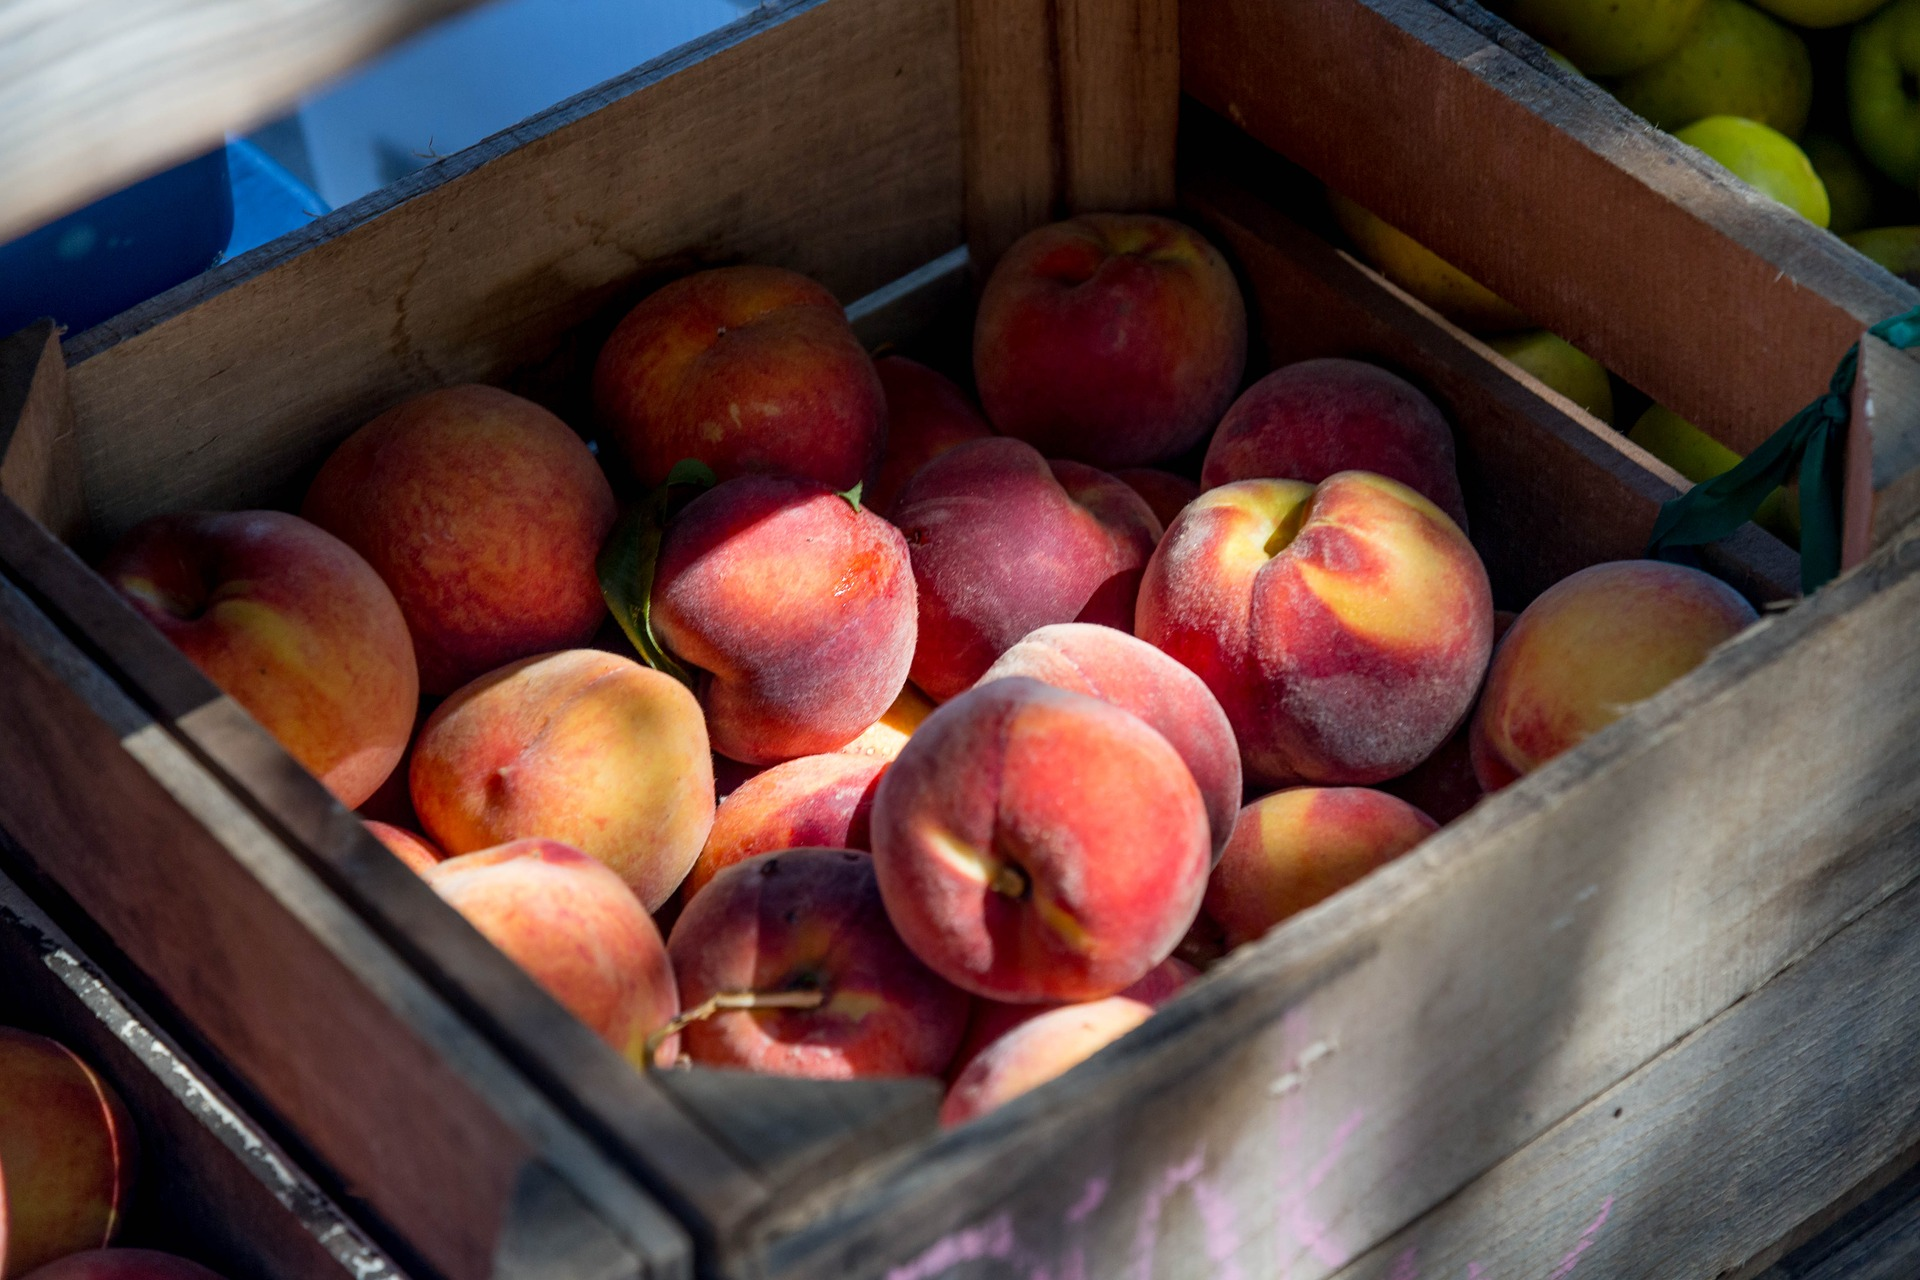 A shaded crate filled with peaches.